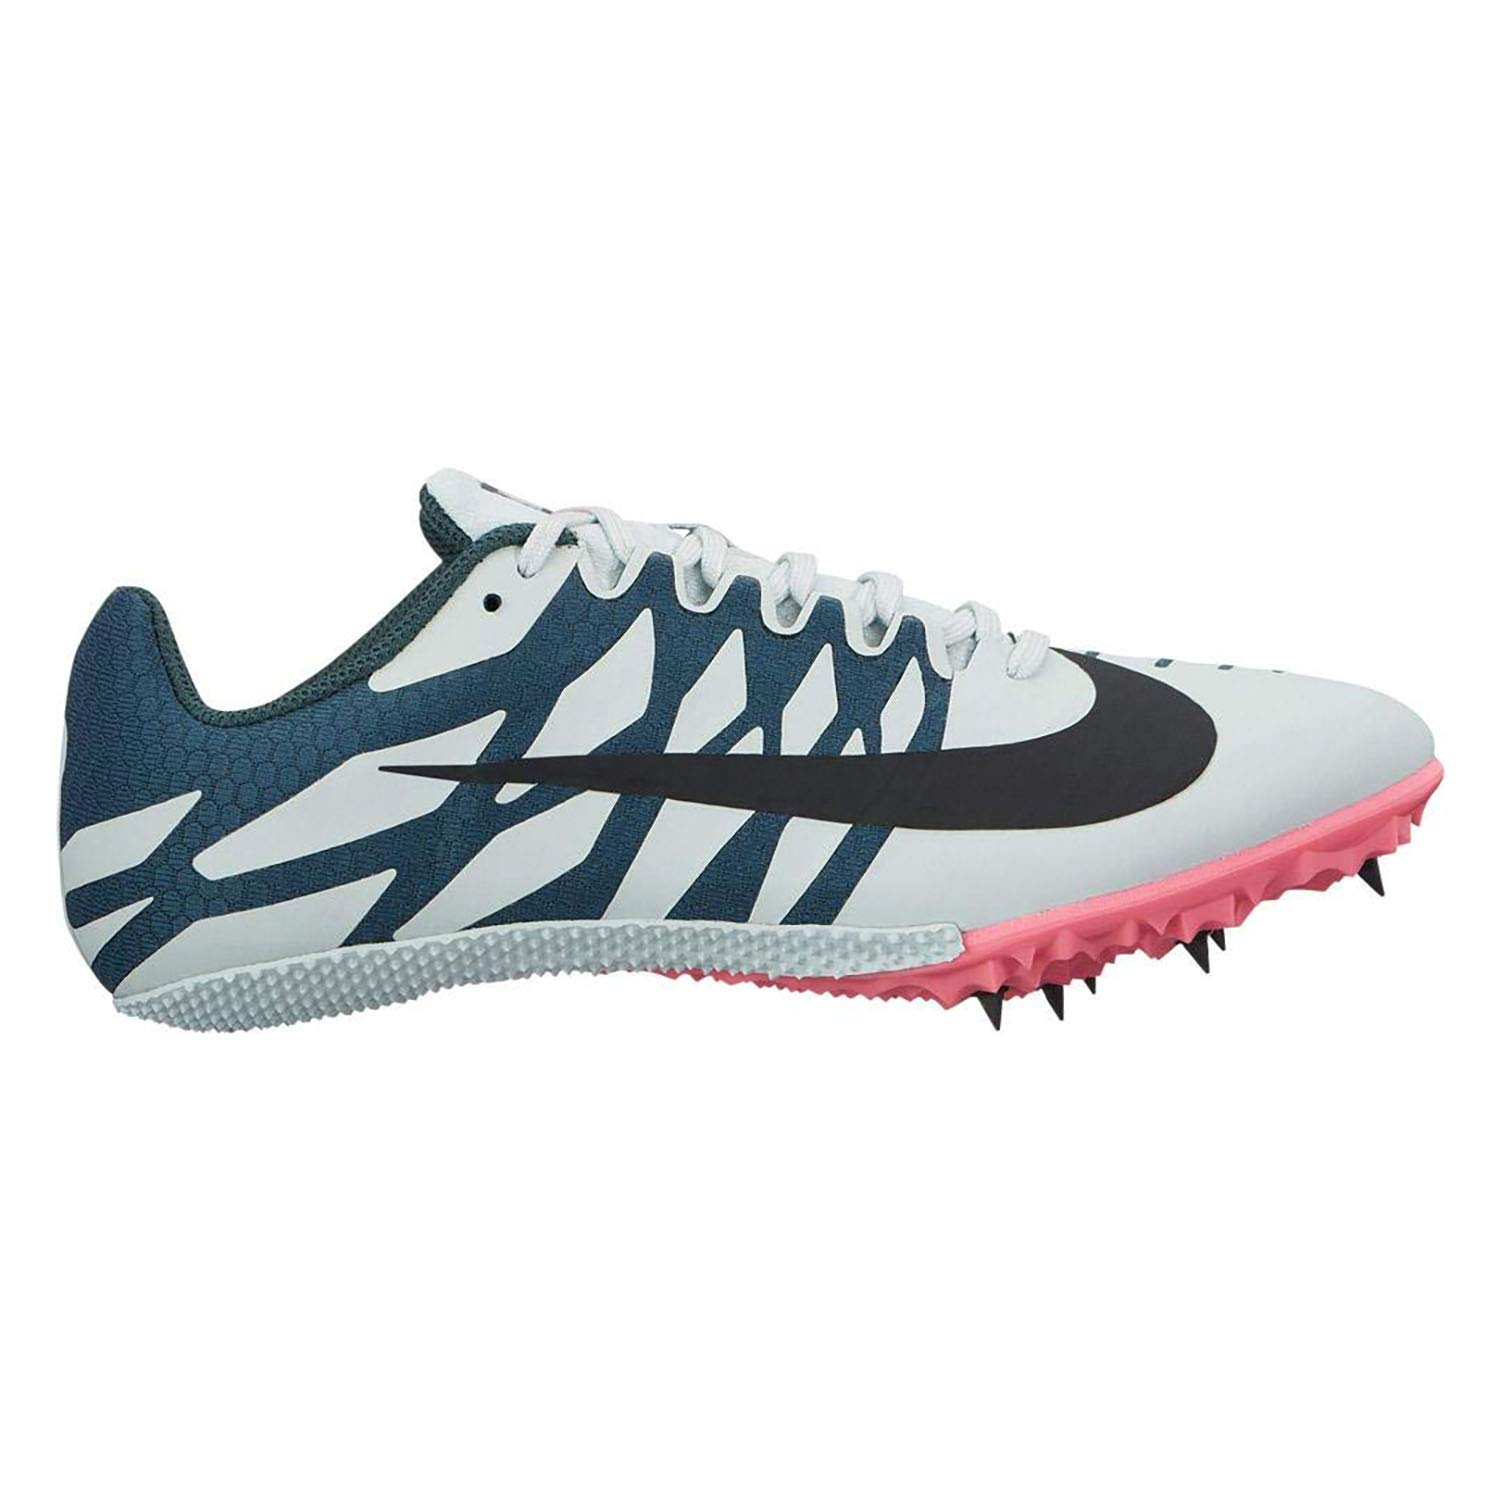 | Nike Zoom Rival S Sprint Track Spikes Shoes